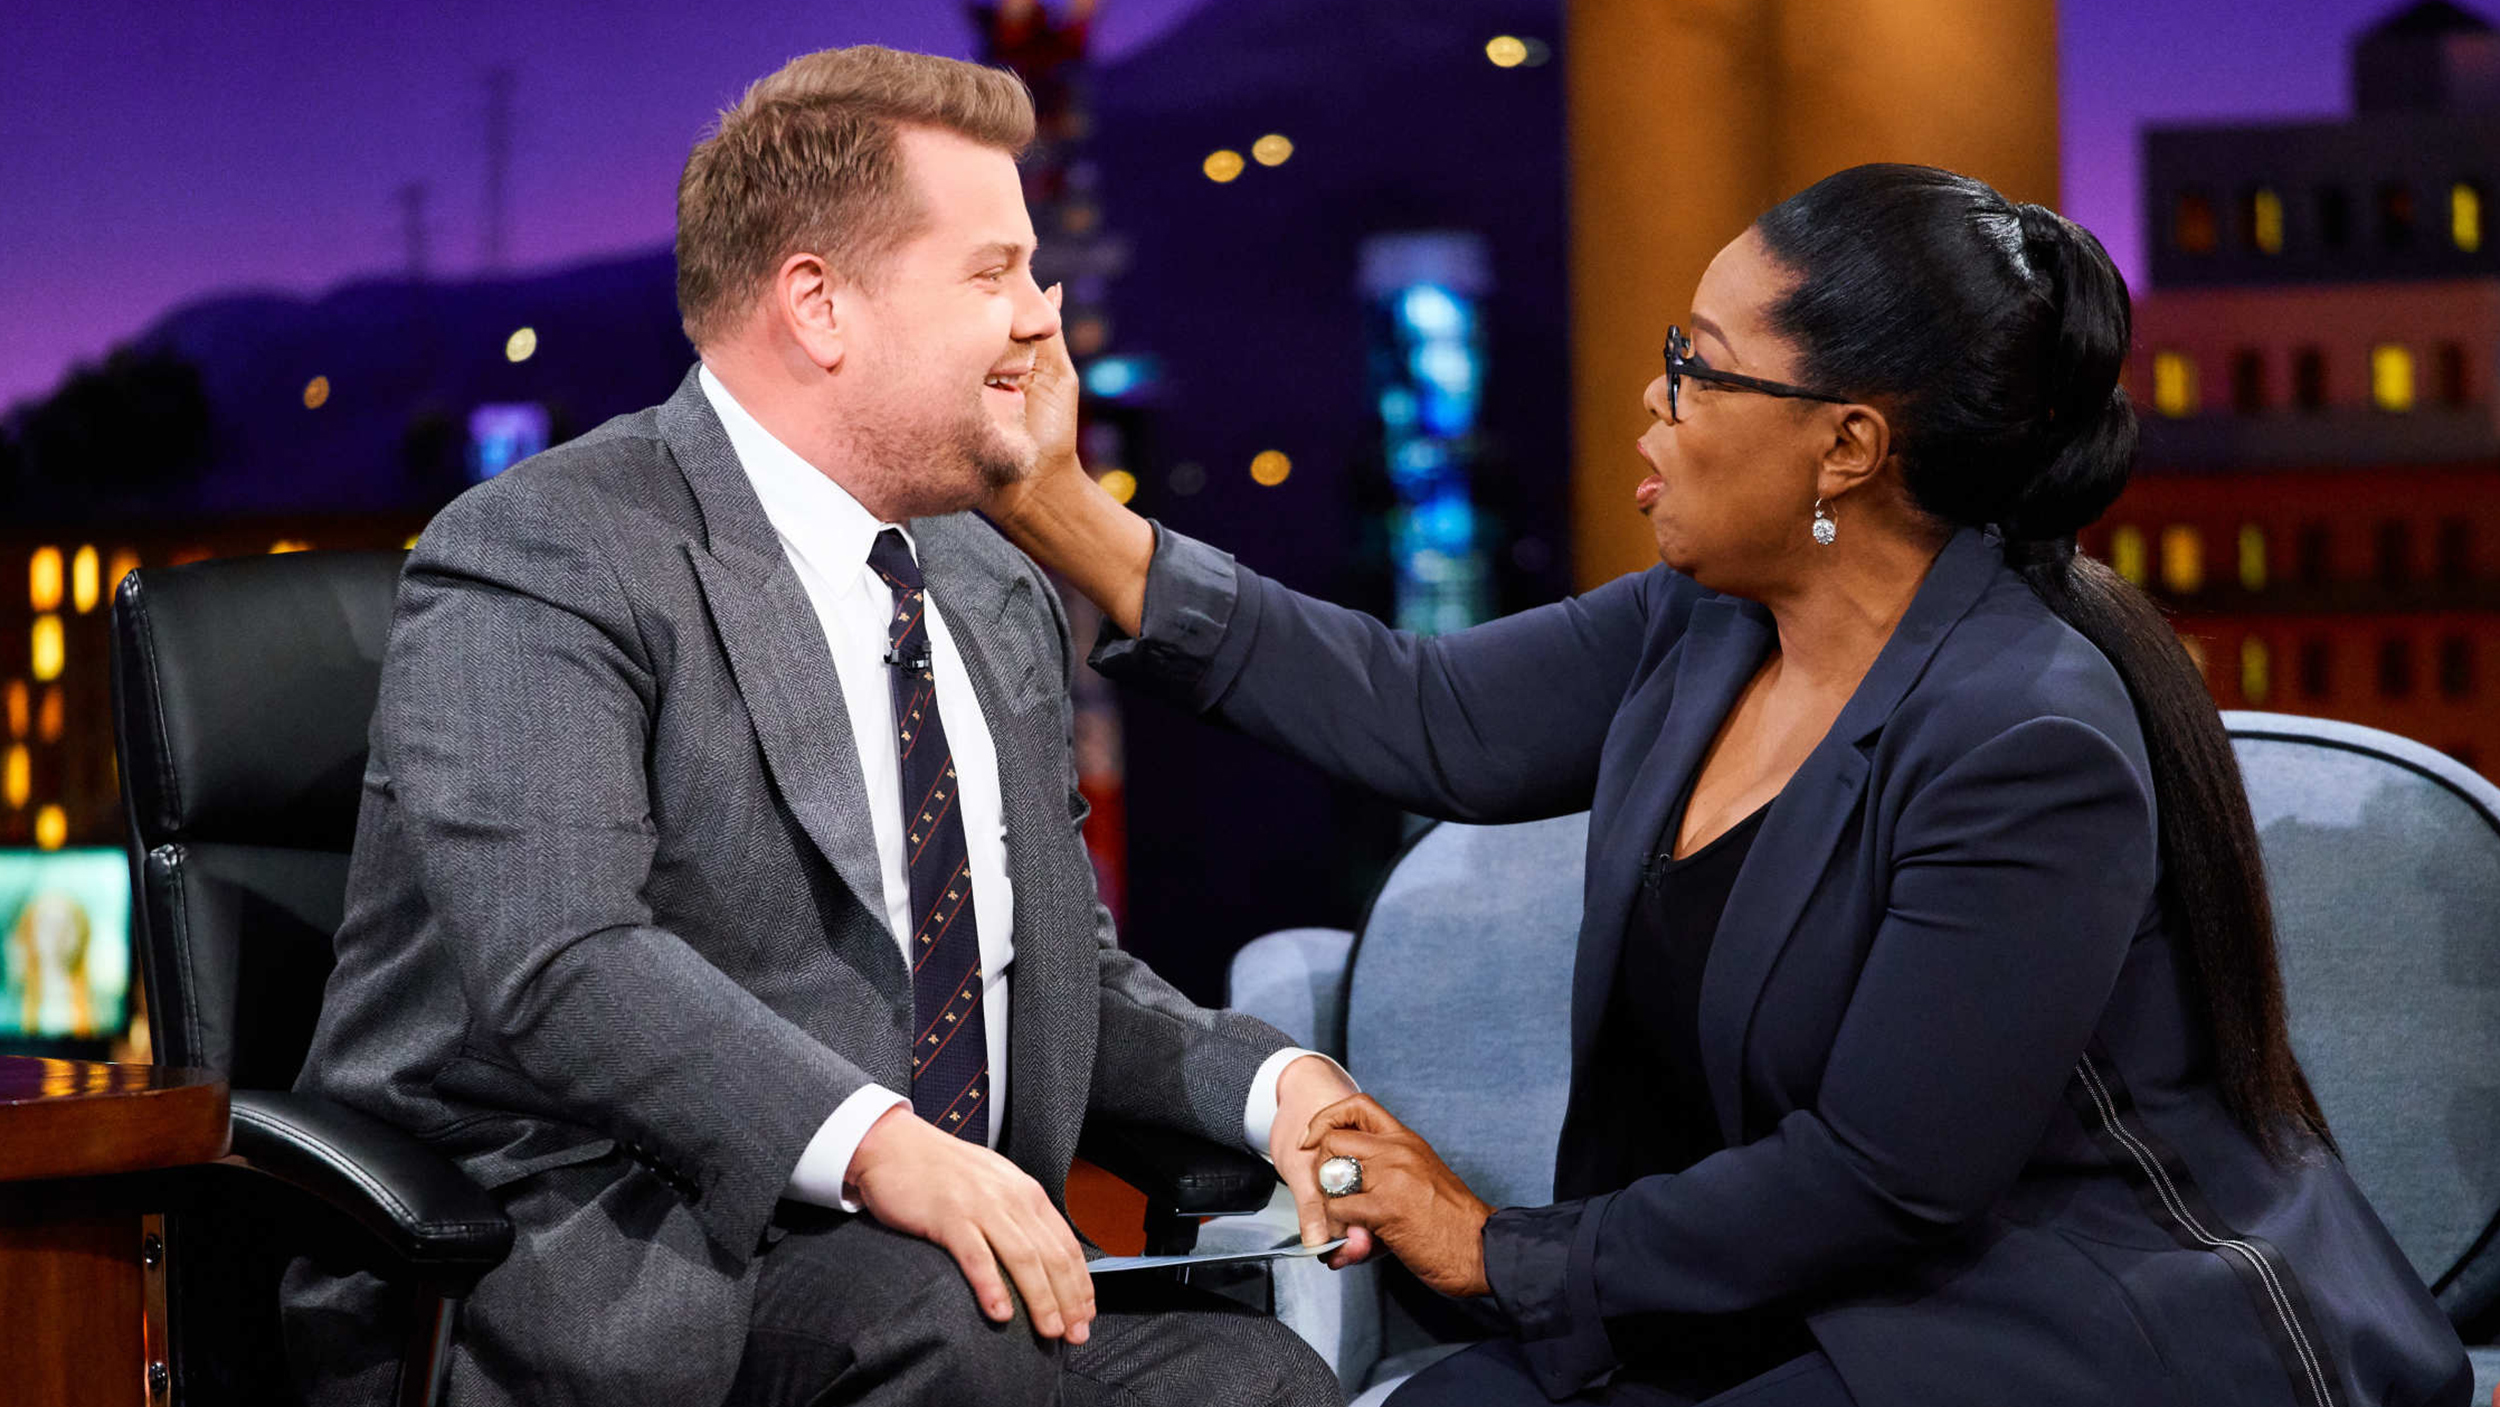 James Corden asked Oprah to make him cry, so she unleashed her powers